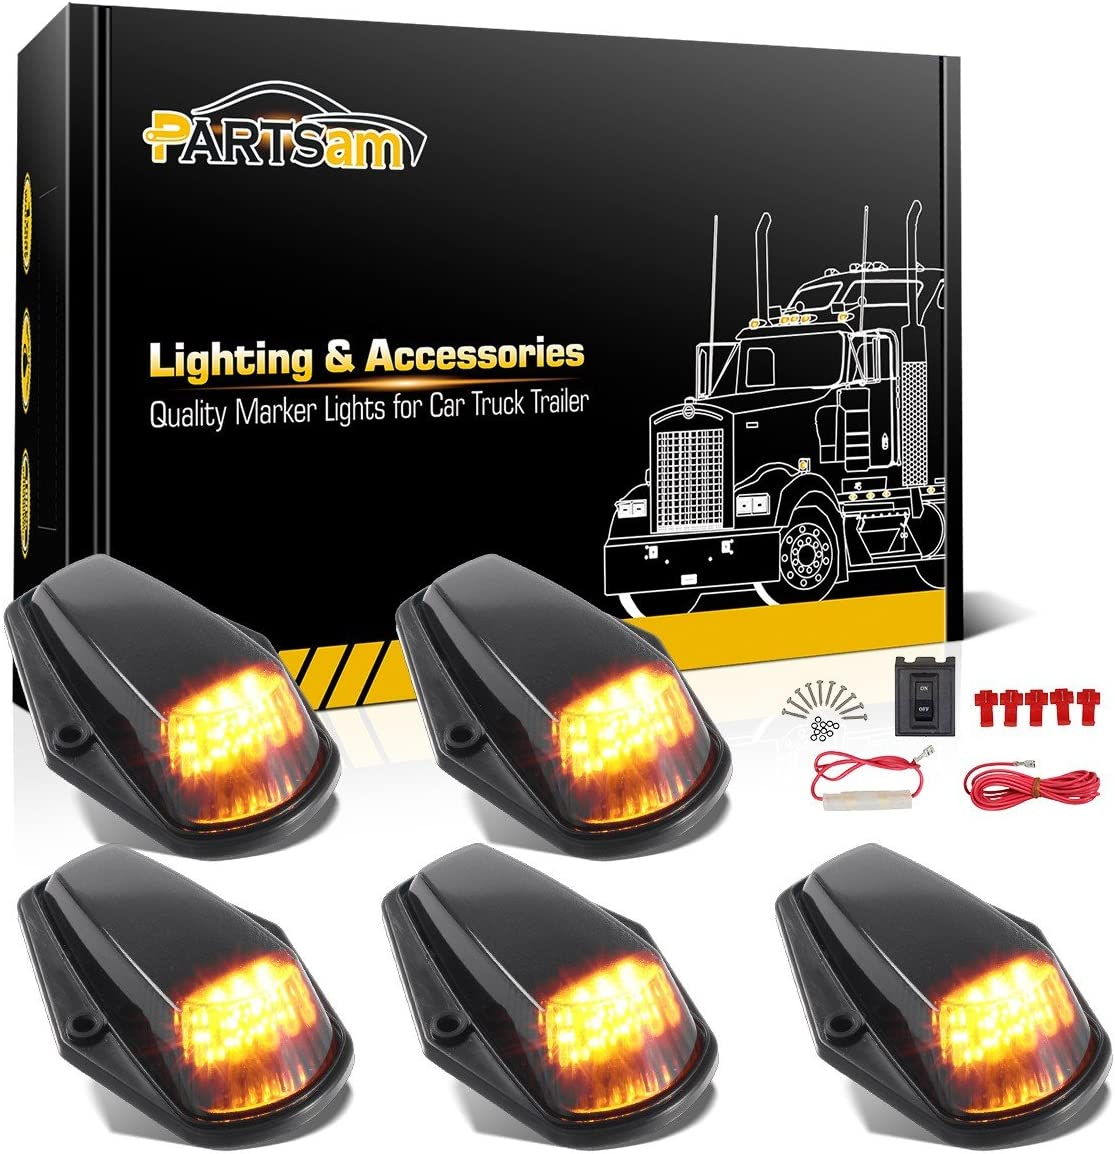 Amazon.com: Partsam 5PCS Cab Marker Light 12LED Amber Top Roof Running LED  Lights w/Wiring Harness Compatible with Ford F150 F250 F350 1973-1997 F  Series Super Duty Pickup Trucks: AutomotiveAmazon.com